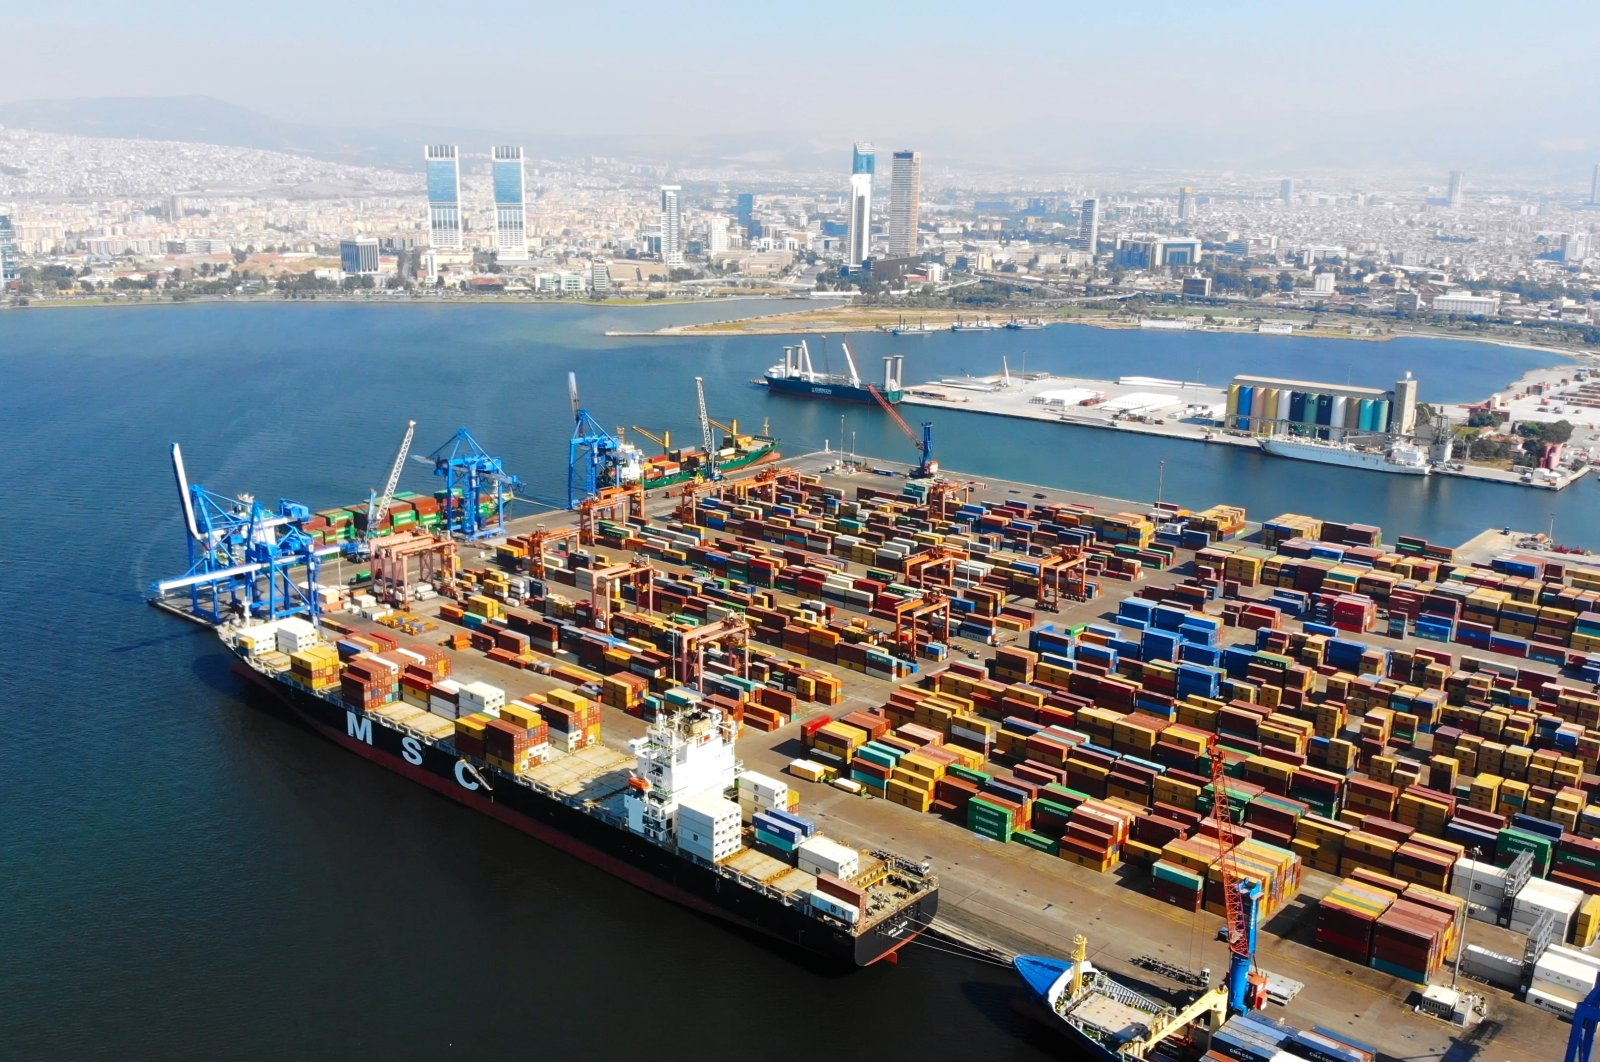 An aerial view of the Port of Izmir in western Turkey, July 10, 2018. (iStock Photo)